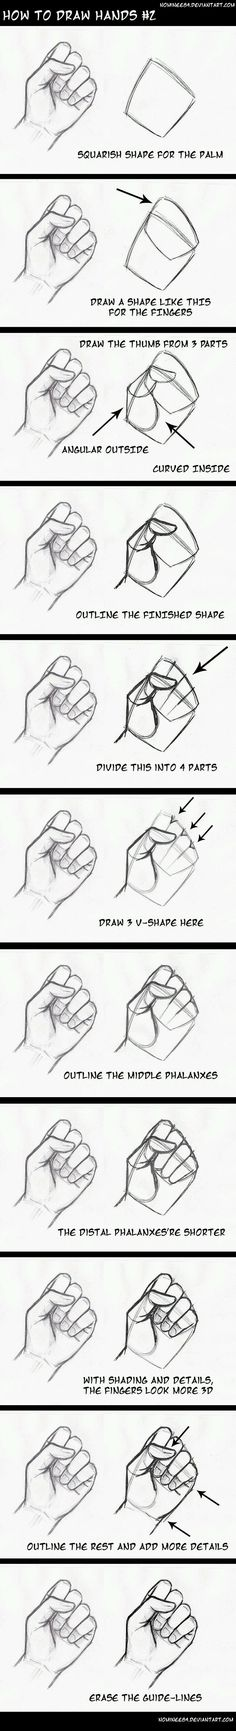 Learn How to draw hands step by step. Source: